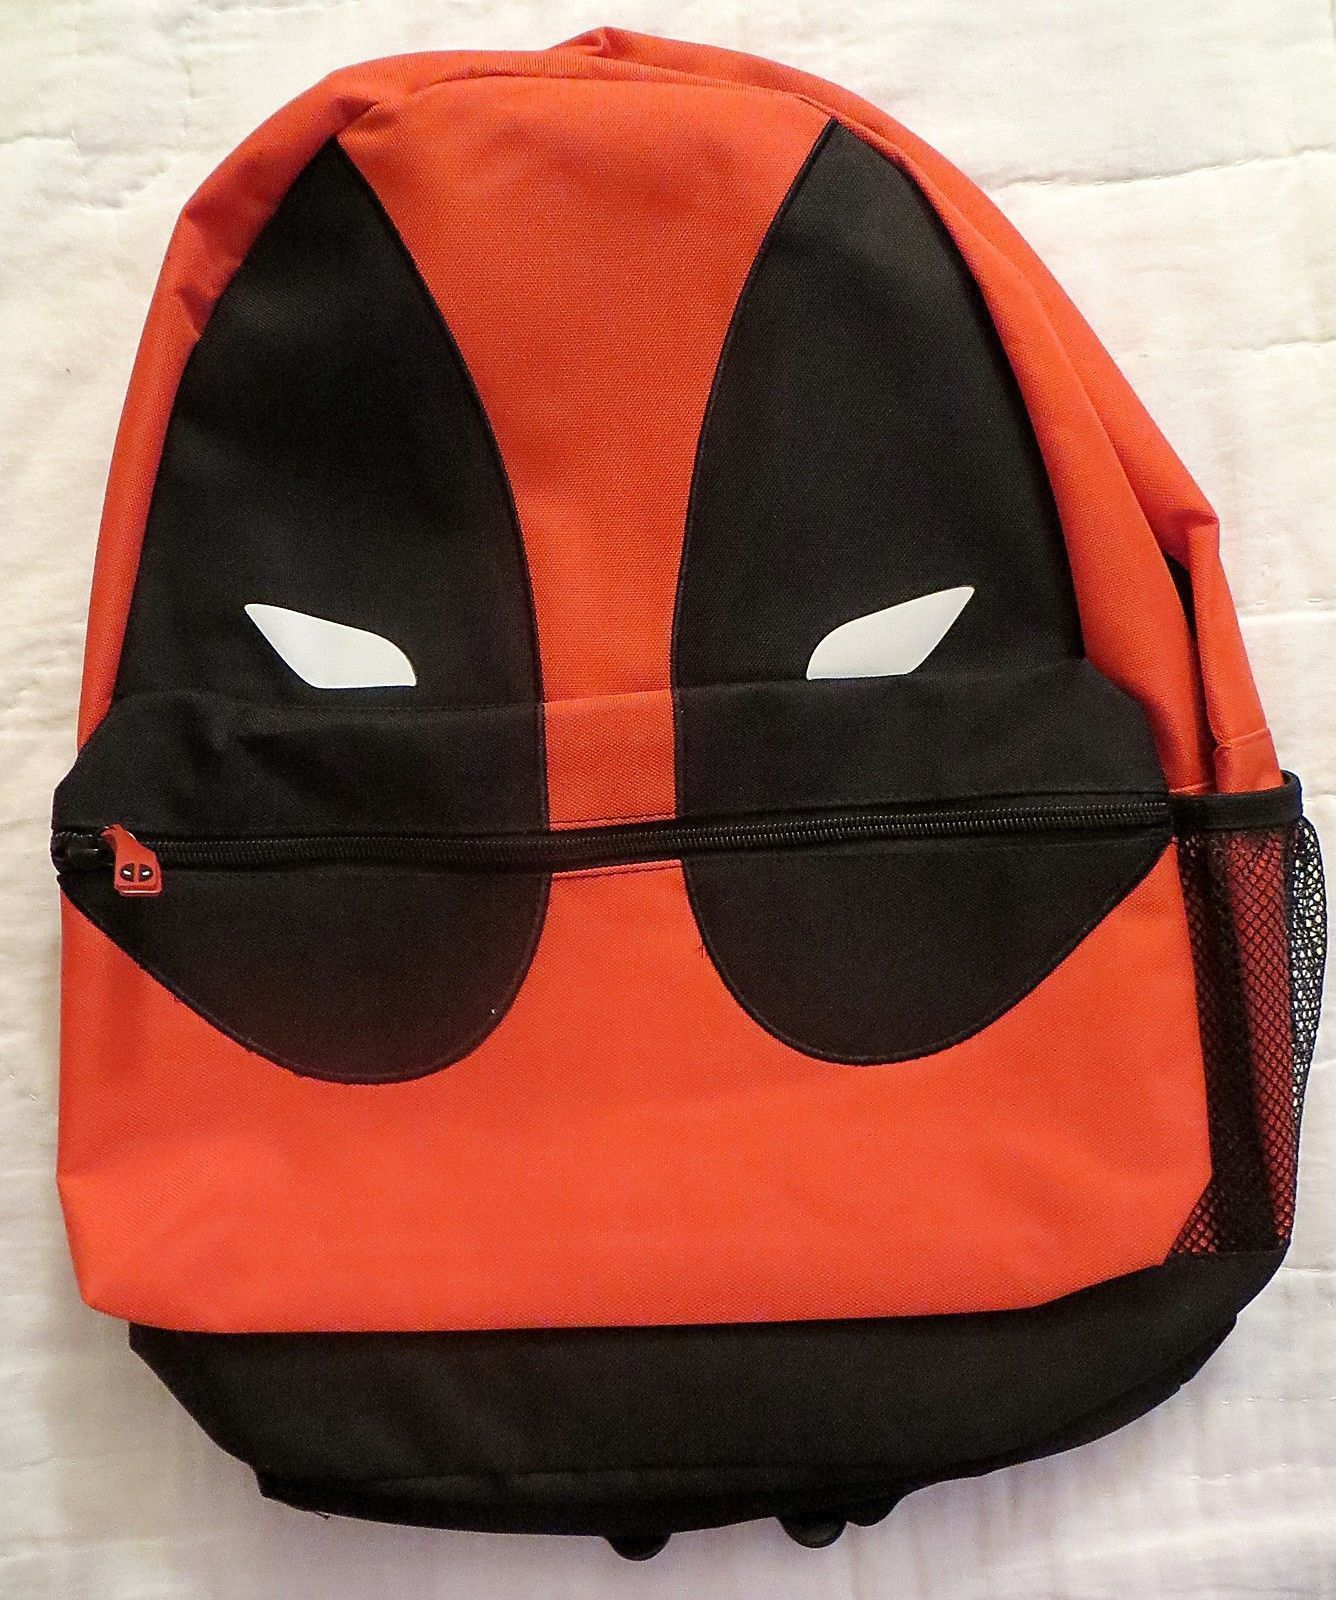 Up For Is A Bag Identical To The One Pictured This Licensed Bookbag Quality Of It Really Nice Dimensions Are 12 W X 17 H